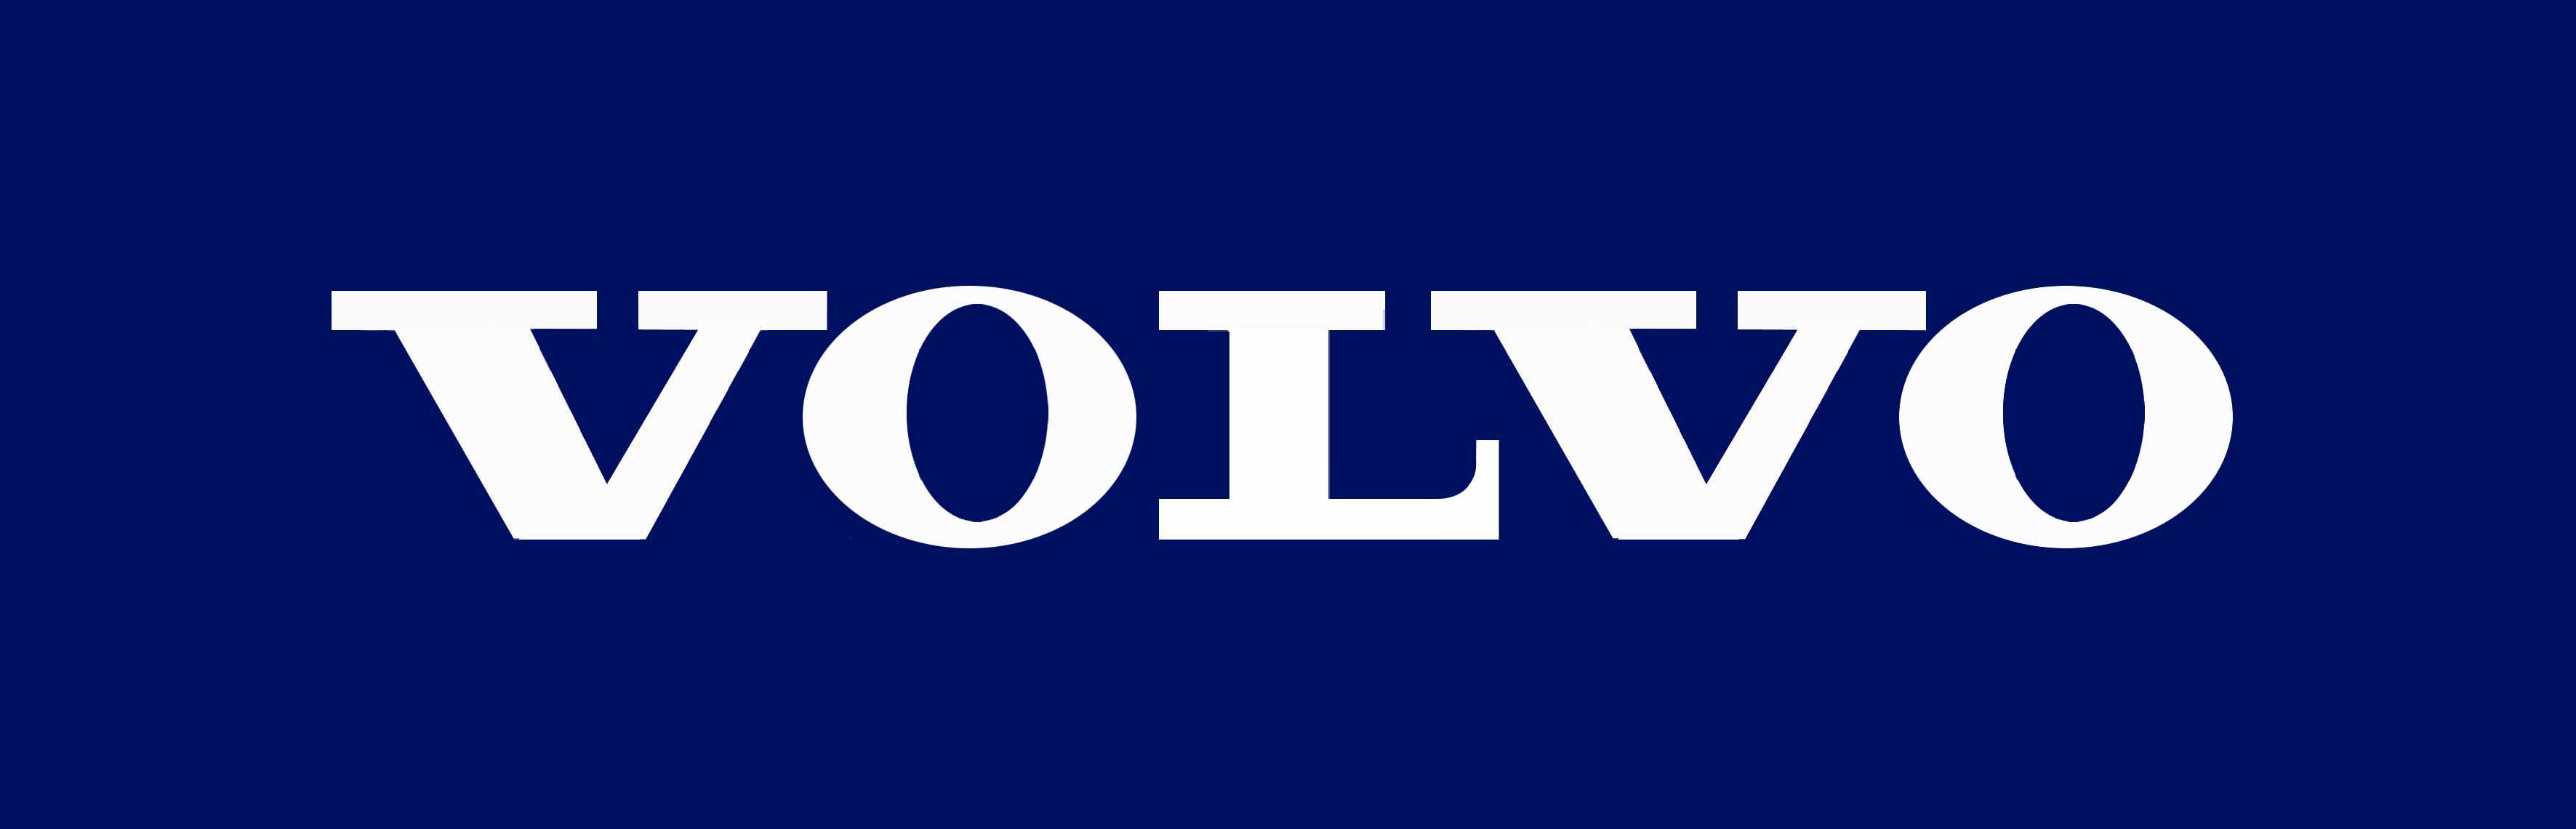 Volvo logo volvo car symbol meaning and history car brand names volvo company logo buycottarizona Images